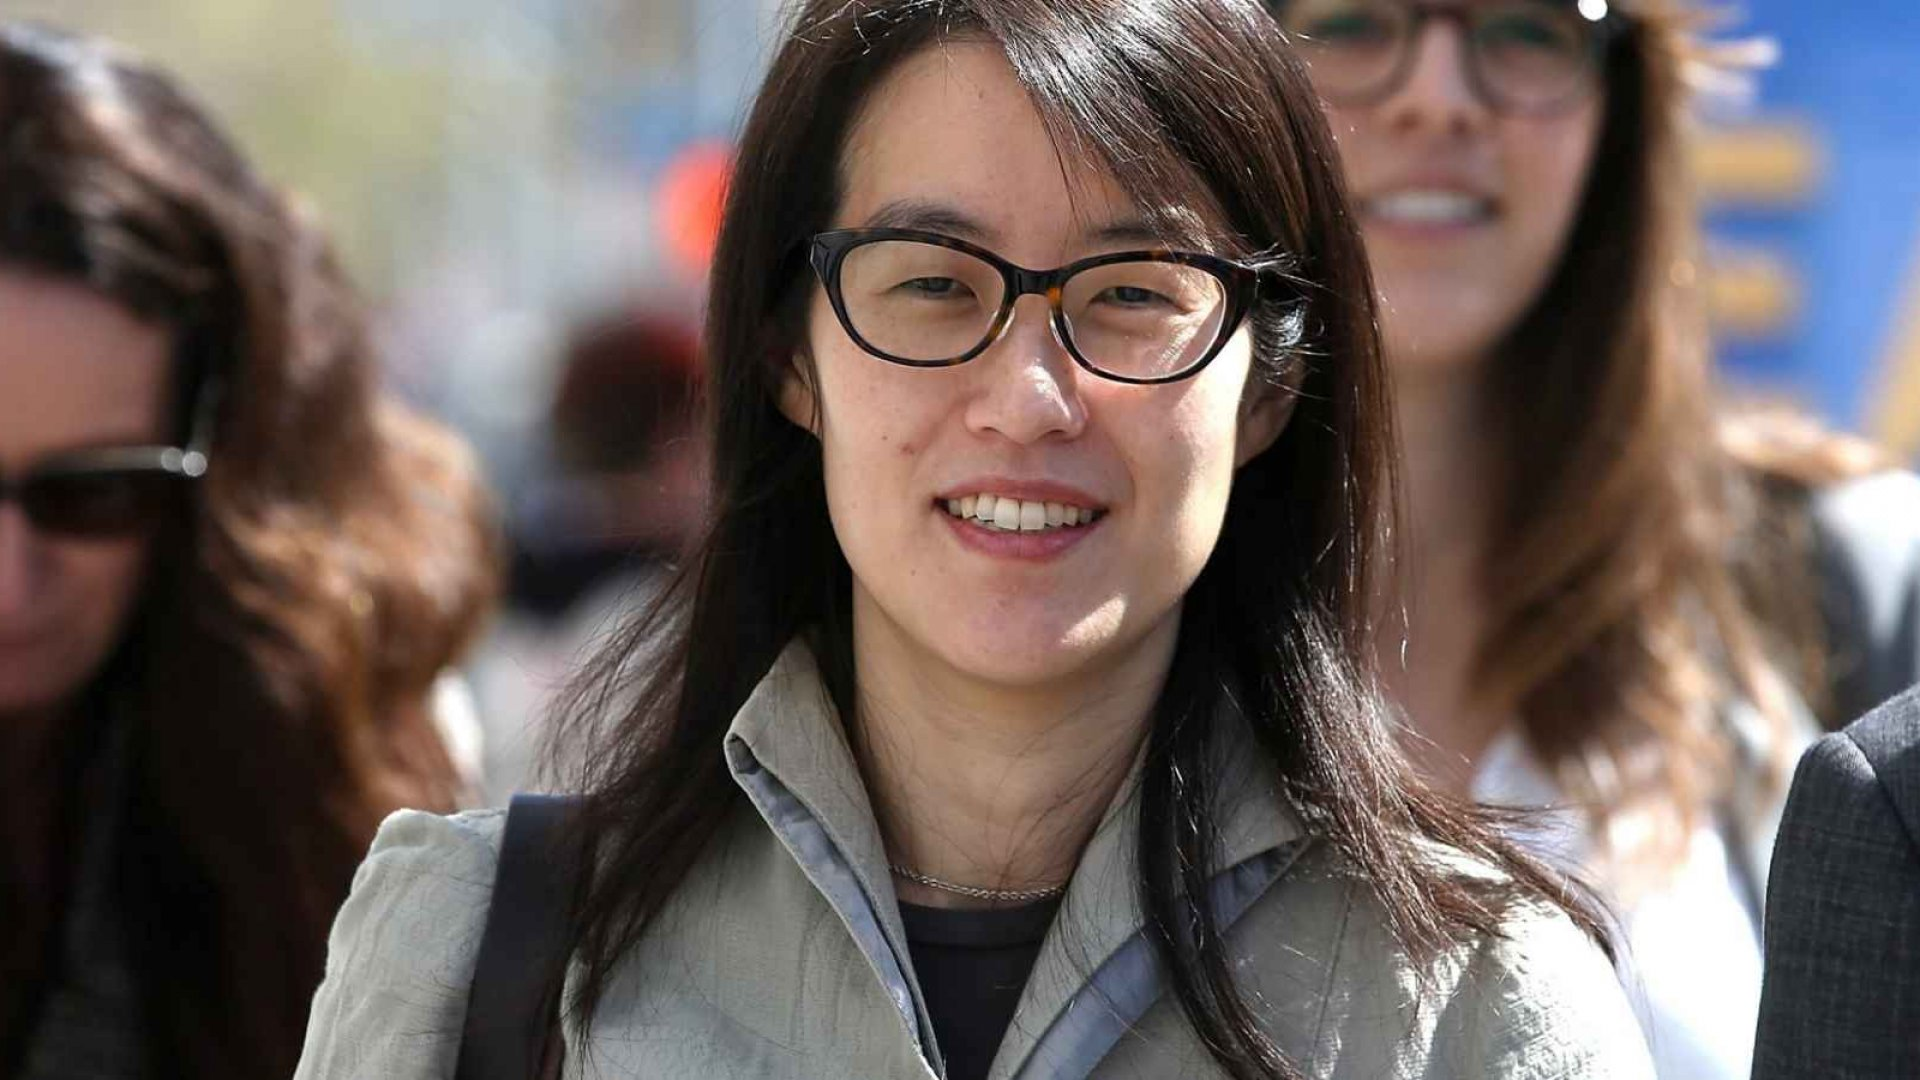 Ellen Pao Objects to Nearly $1M in Gender Bias Lawsuit's Legal Costs